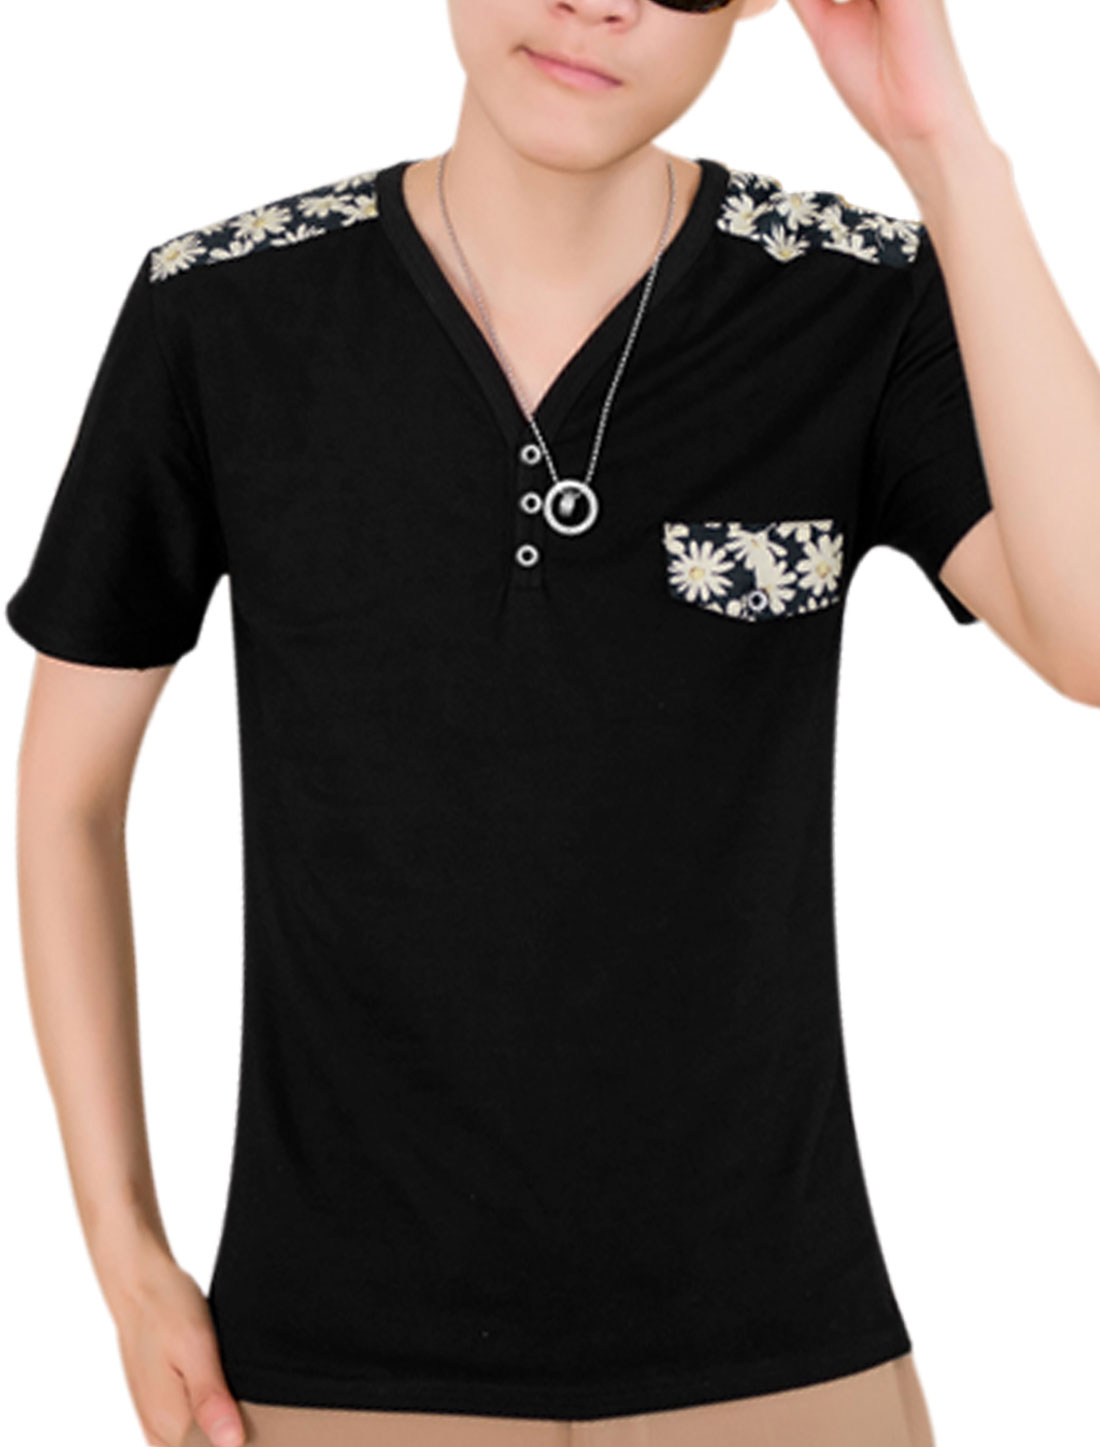 Men Y Neck Short Sleeve Floral Prints Pullover T-Shirt Black S